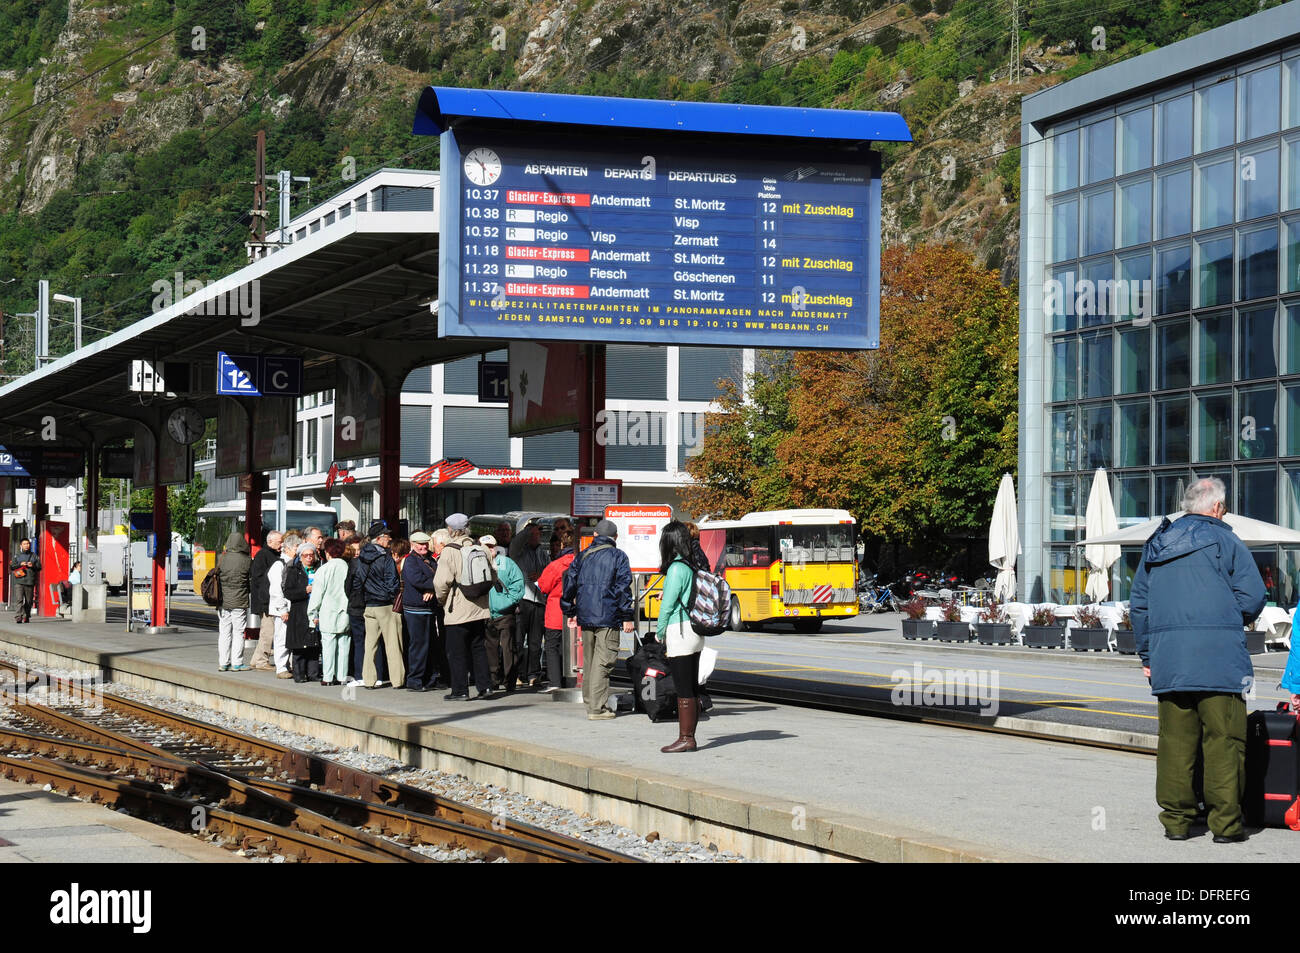 Passengers and train departure information board at Brig railway station, Valais, Switzerland - Stock Image